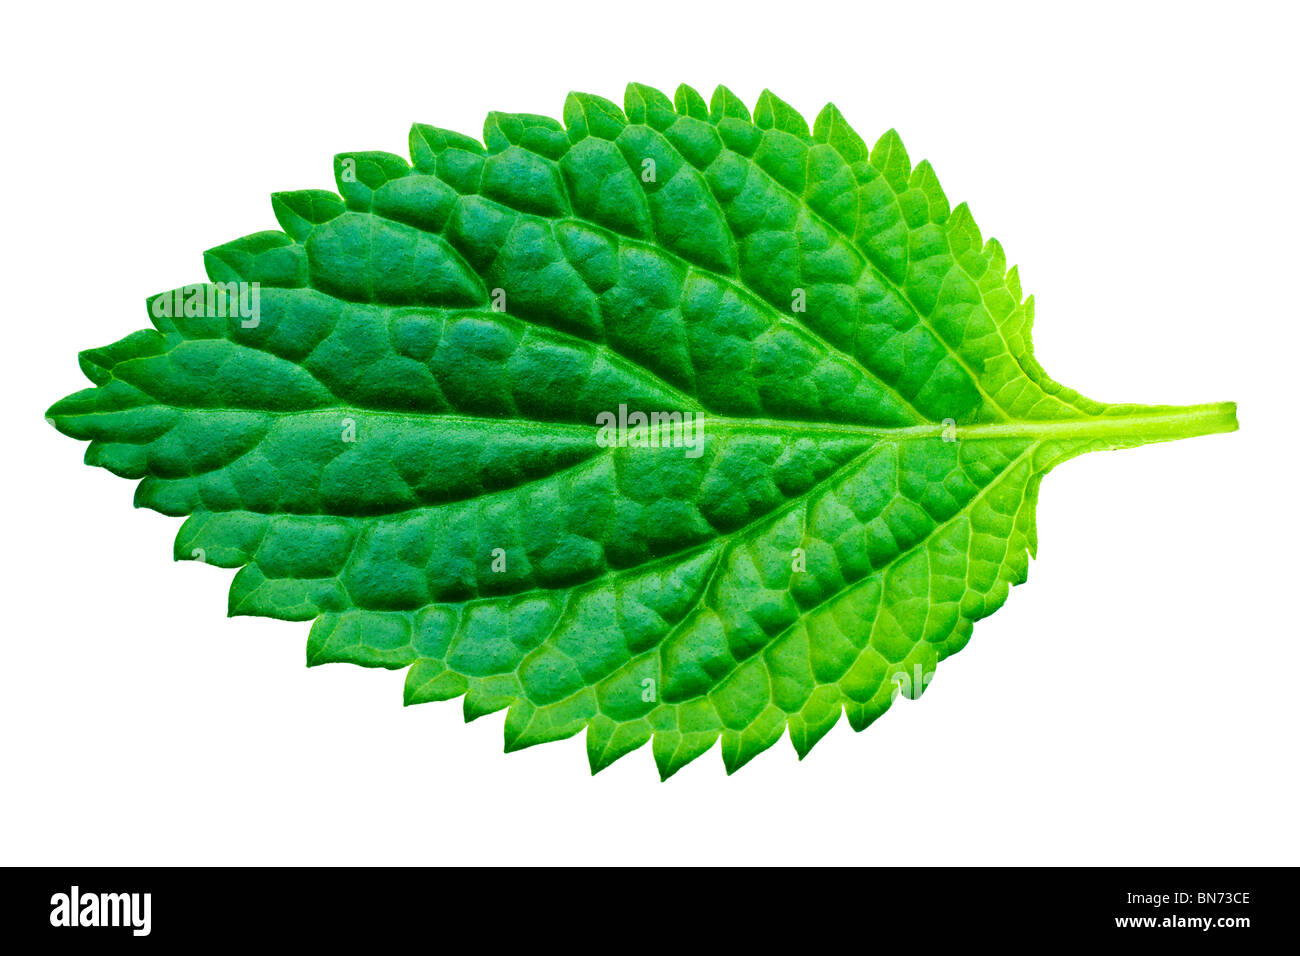 A beautiful lush green leaf. Isolated over white with clipping path. - Stock Image